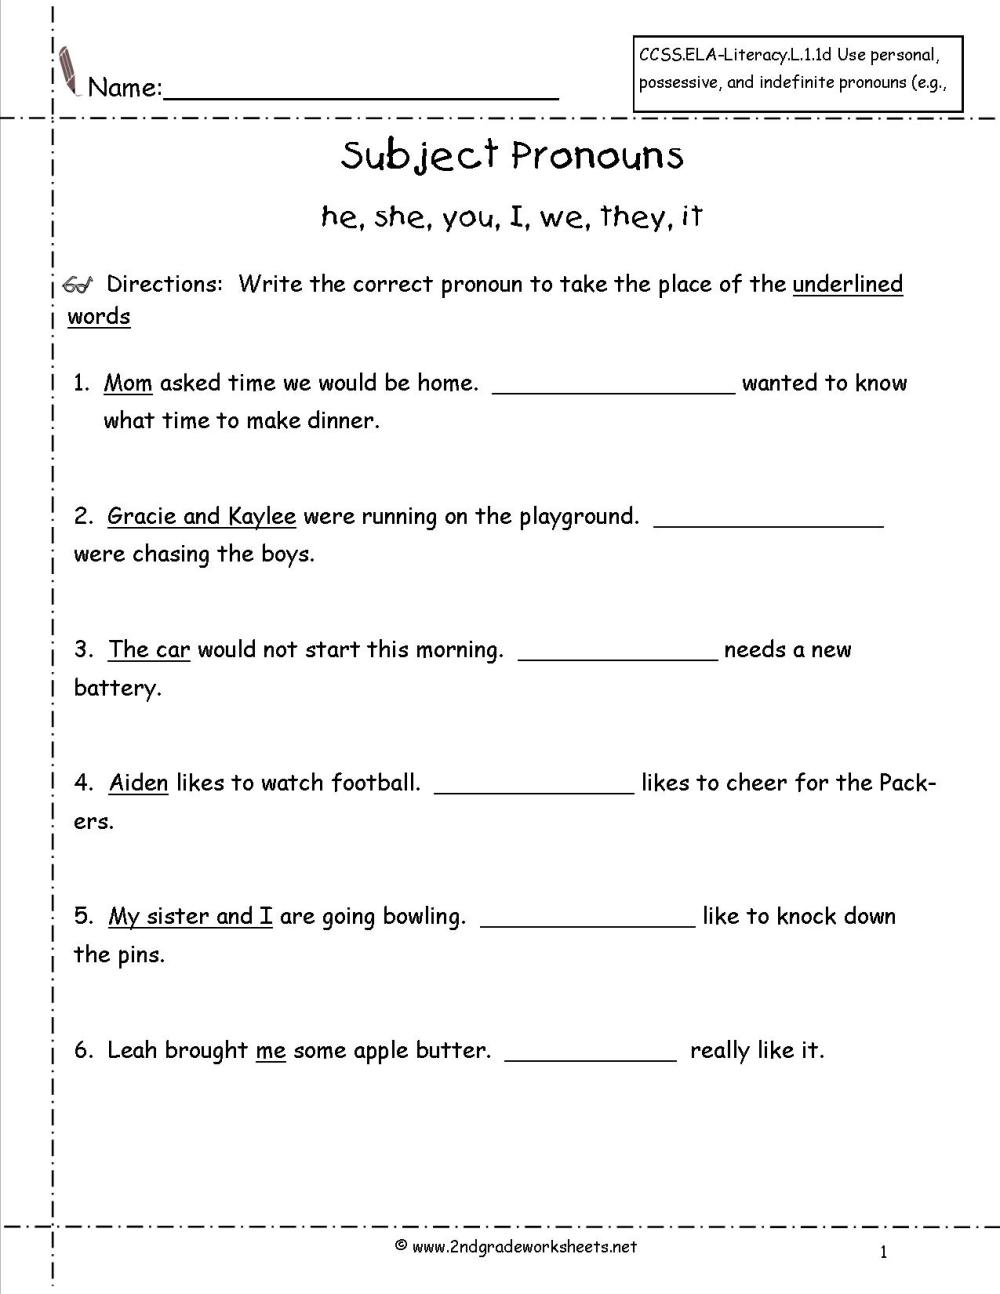 medium resolution of Pronouns Worksheets For Grade 1   Printable Worksheets and Activities for  Teachers